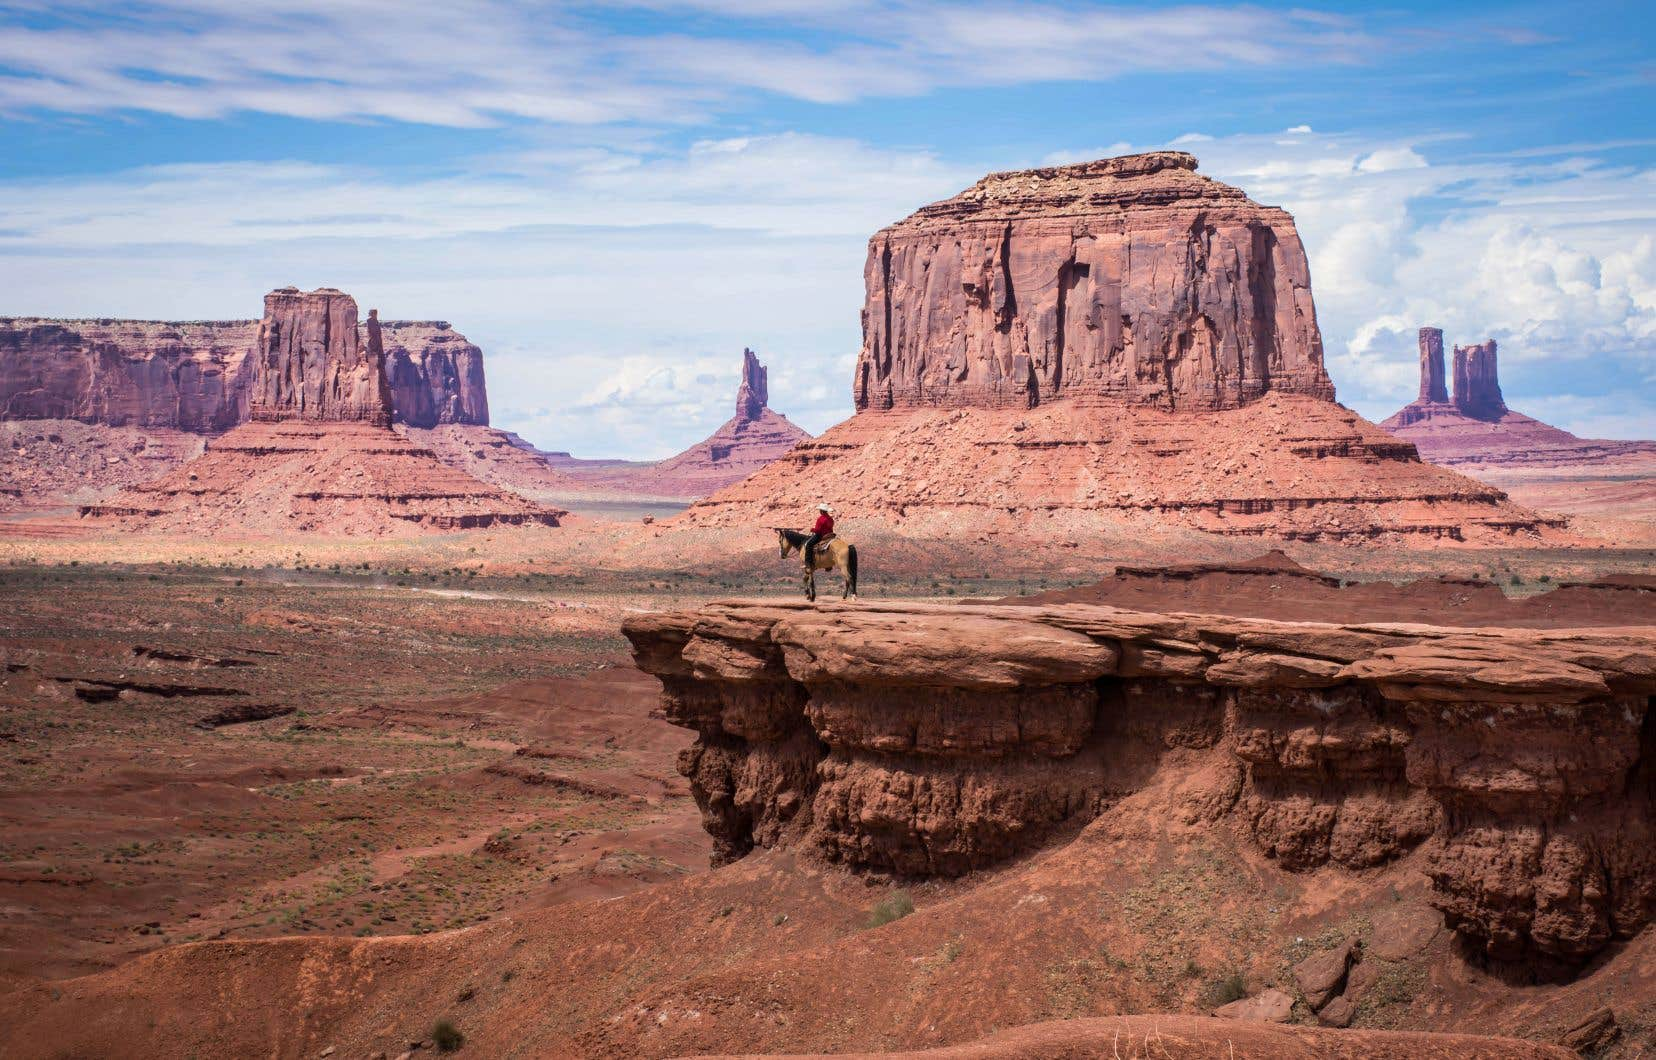 Monument Valley depuis John Ford Point. Un Navajo contemple le vide sur son cheval.